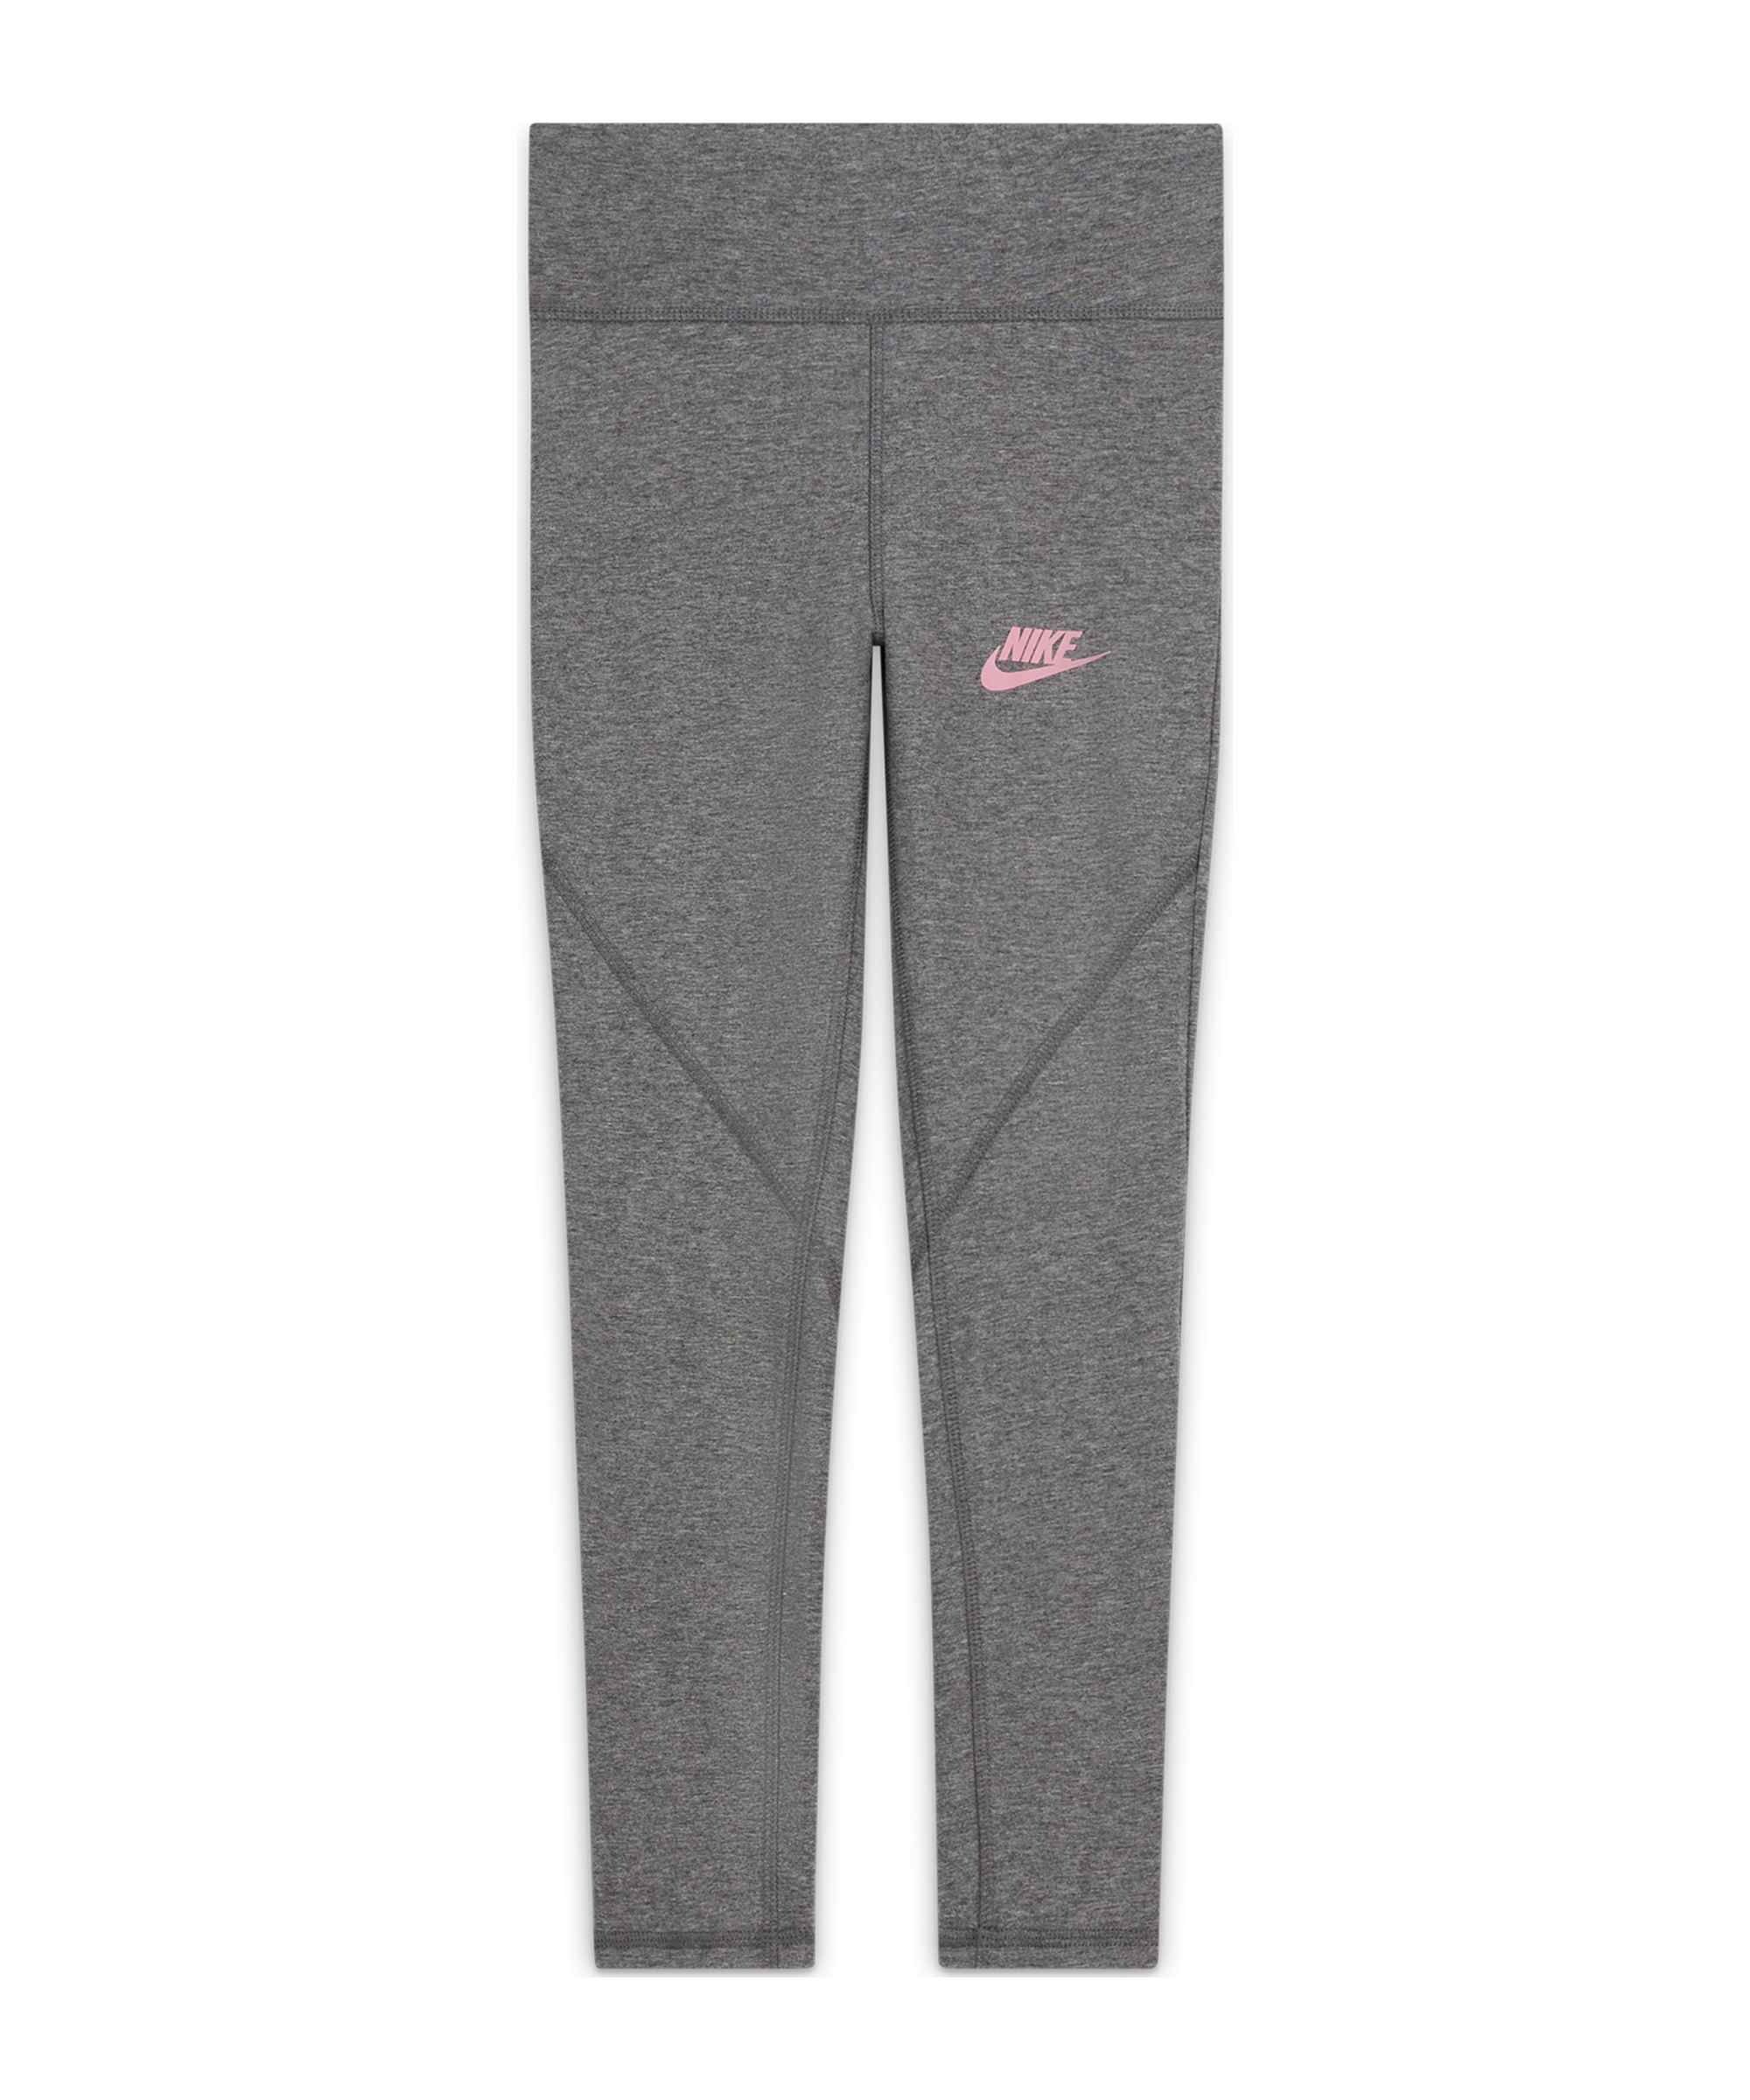 Nike Favorites GX Legging Kids Grau F092 - grau